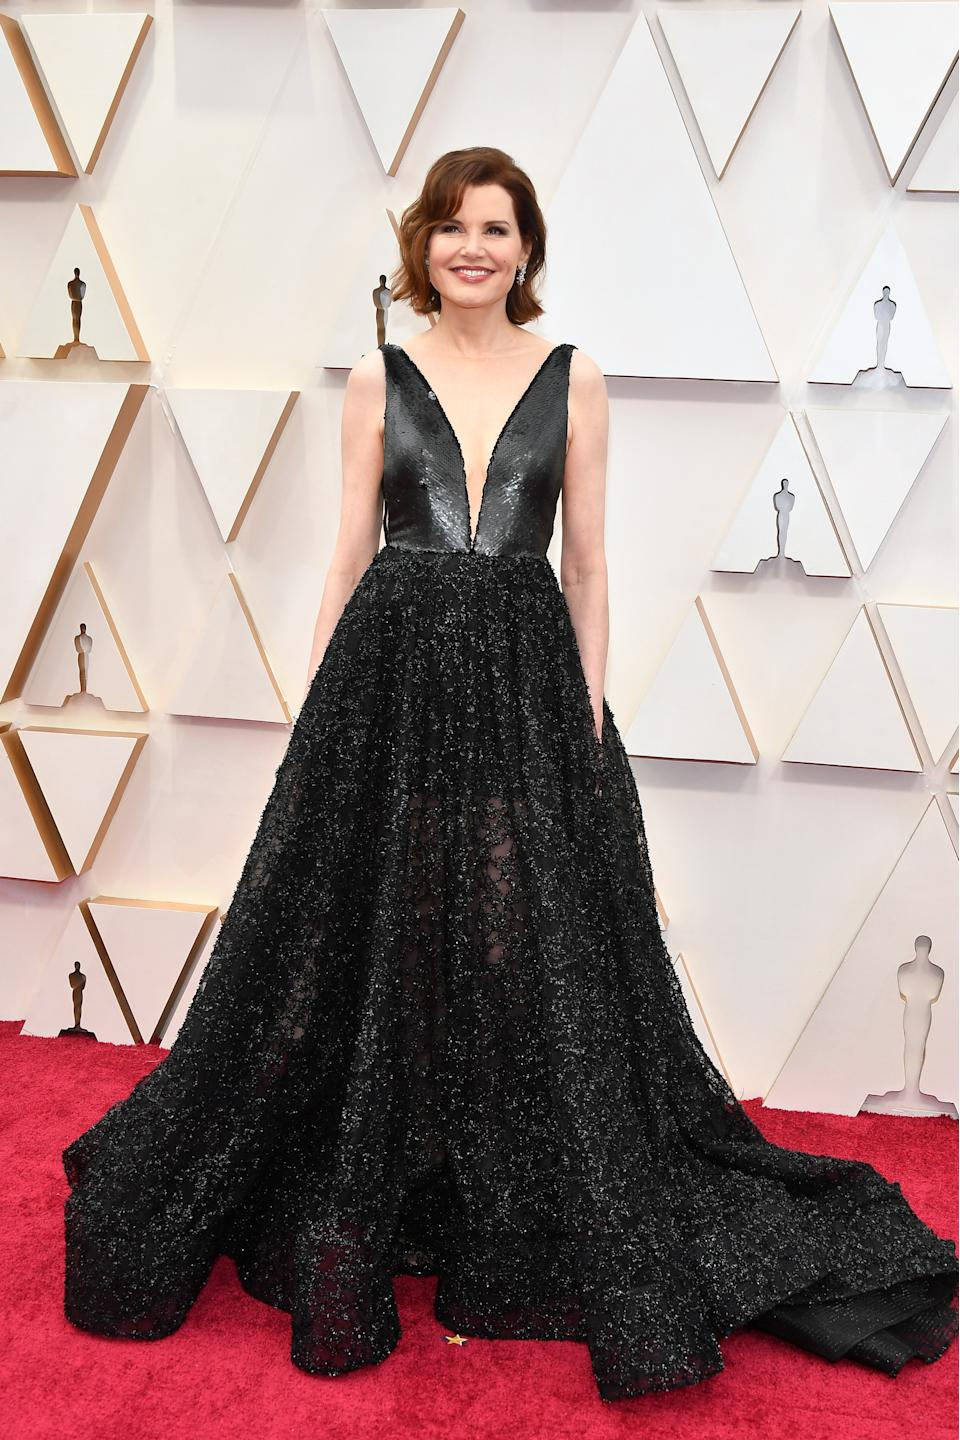 Davis arrived on the red carpet in a glamorous black sequinned gown that featured a plunging illusion neckline. In Oct. 2019, Davis was awarded the Jean Hersholt Humanitarian Award, an honorary Oscar for her work in promoting gender equality and confronting gender bias on screen.